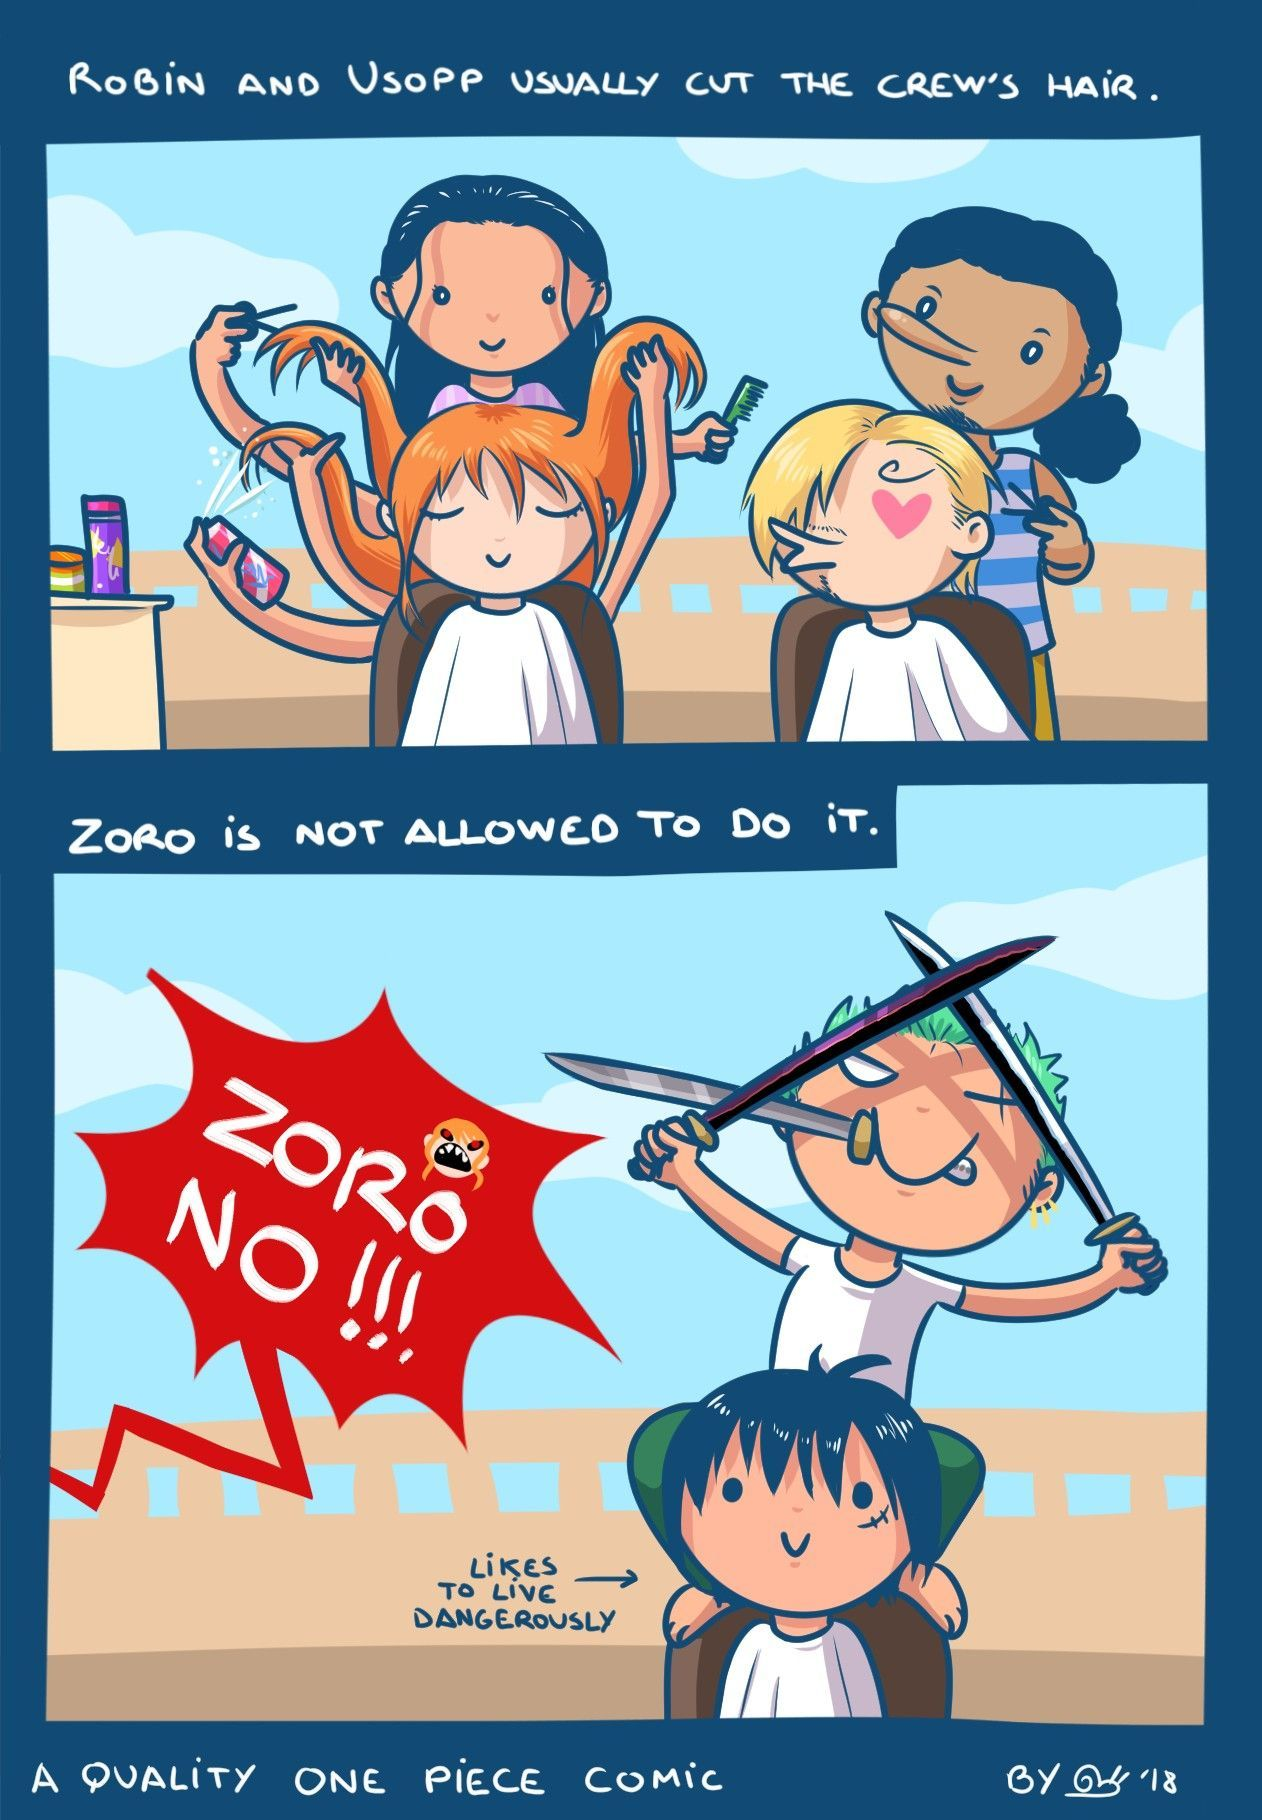 funny by Darius Williams in 2020 One piece funny, One